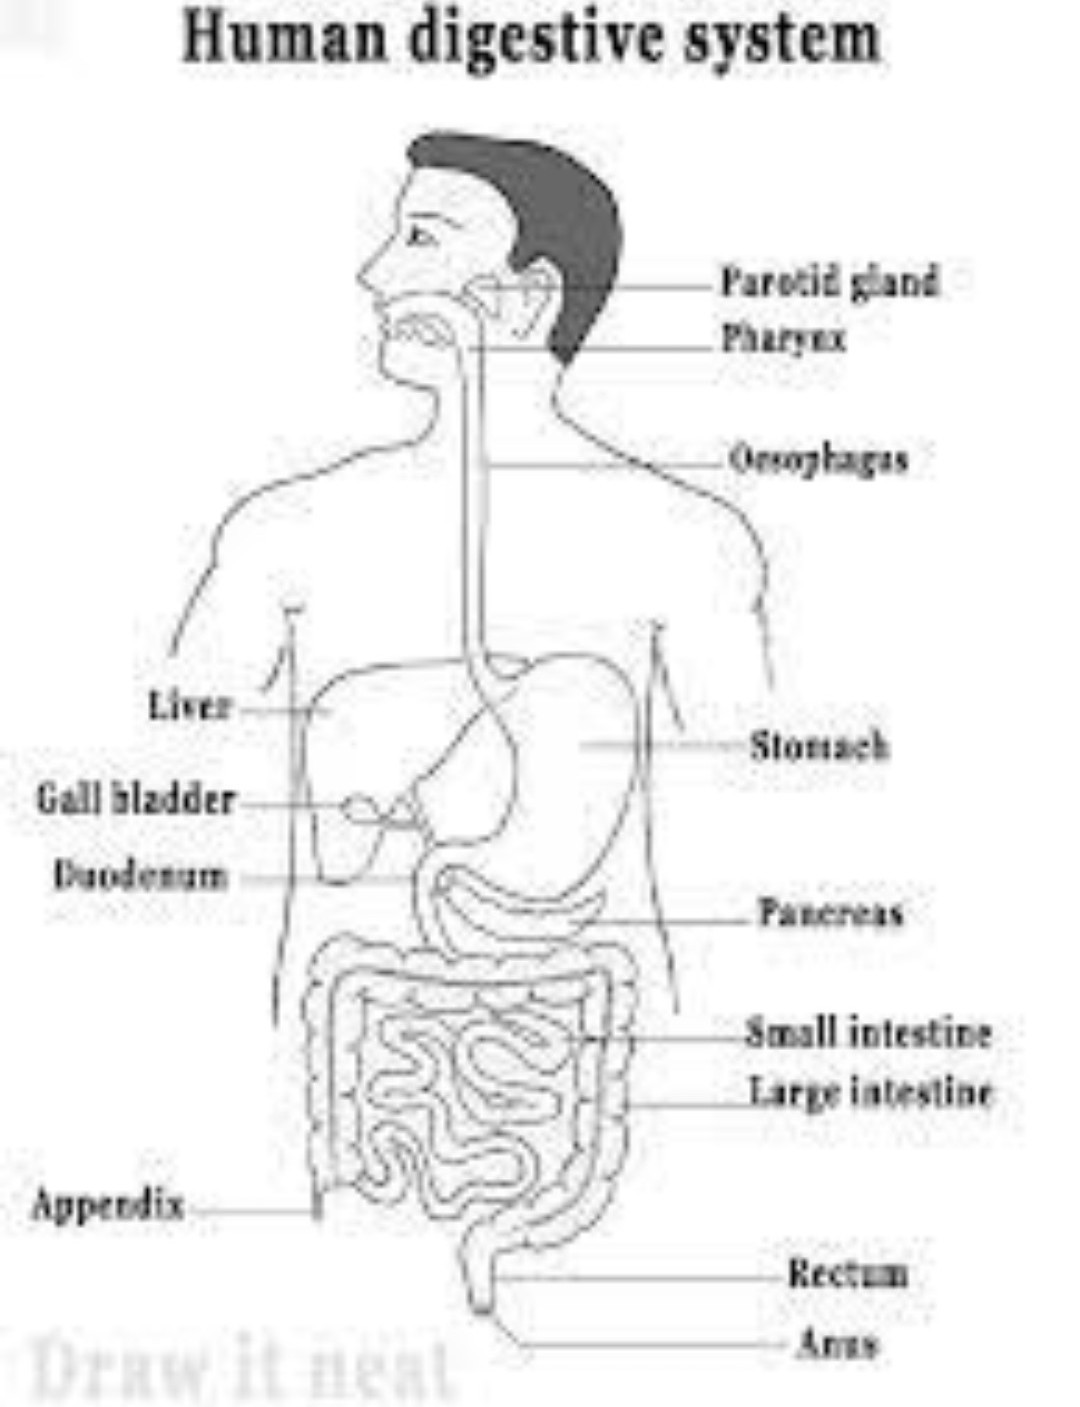 Digestive System Labeling Diagram